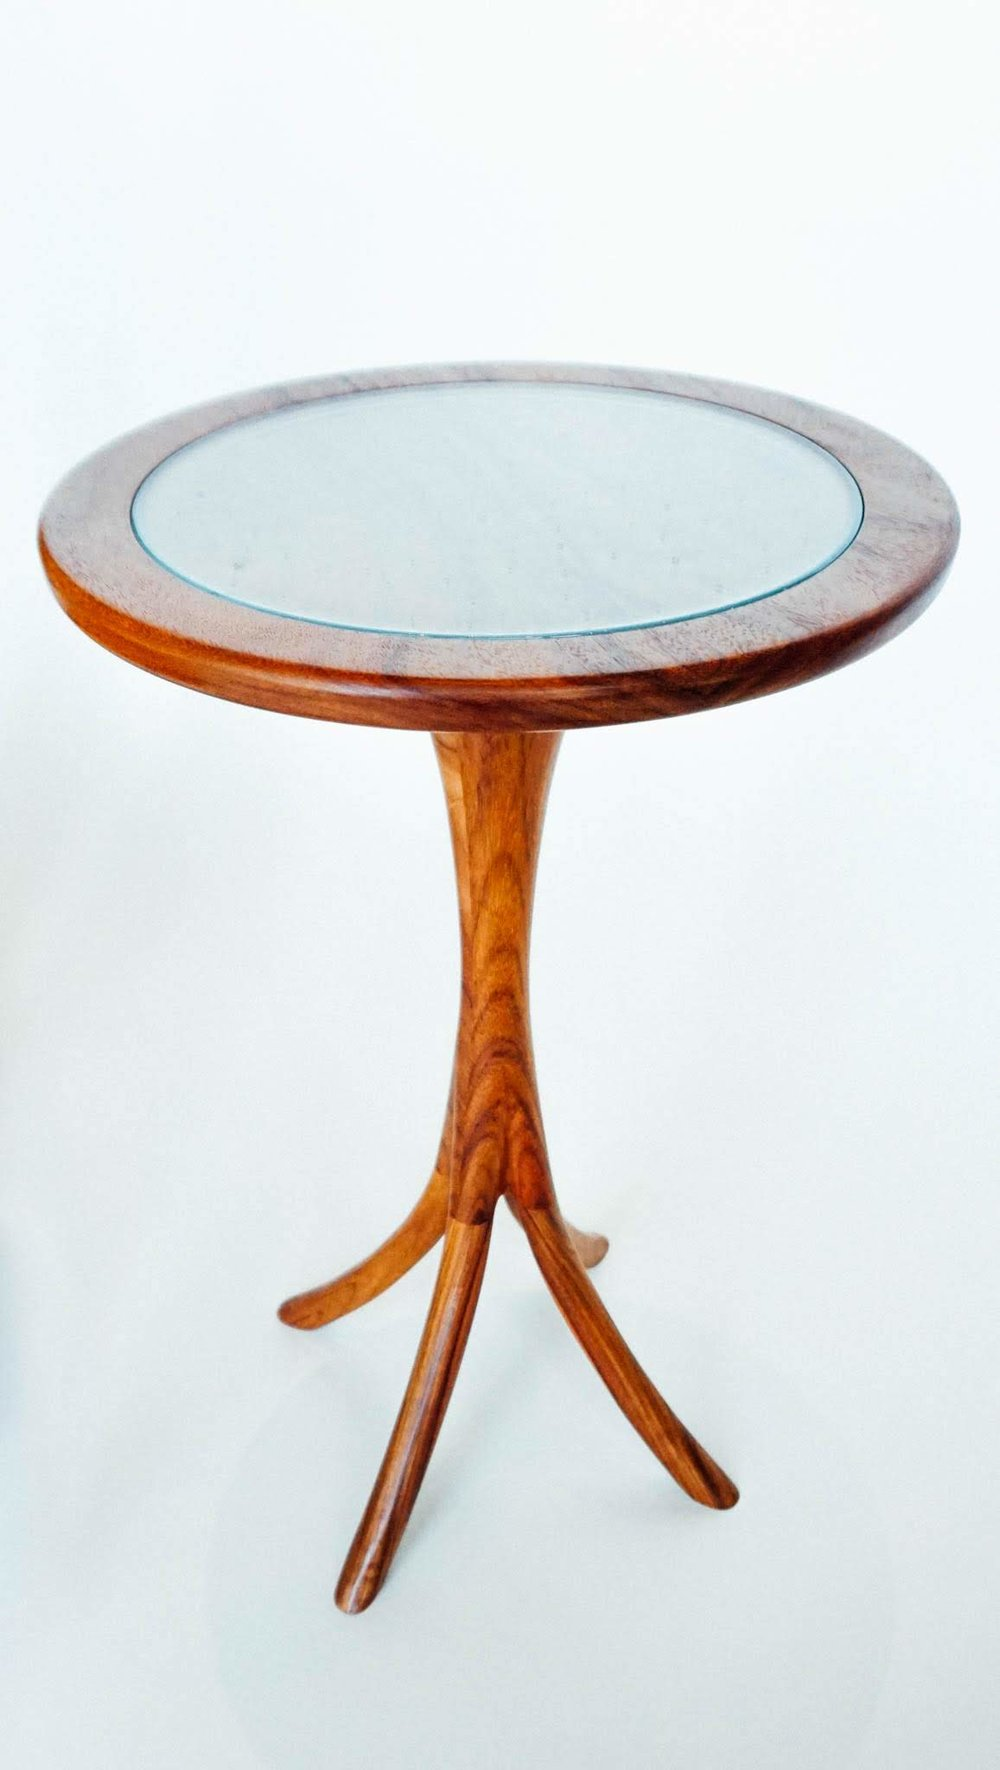 "The table is approximately 22"" tall and 14"" in diameter and shown in macawood. It is perfect for a cuppa of whatever suits you. The custom made glass top provides visibility to the wood's beauty and an attractive cover to prevent damage to the finish. It is the perfect complement to your new chair."